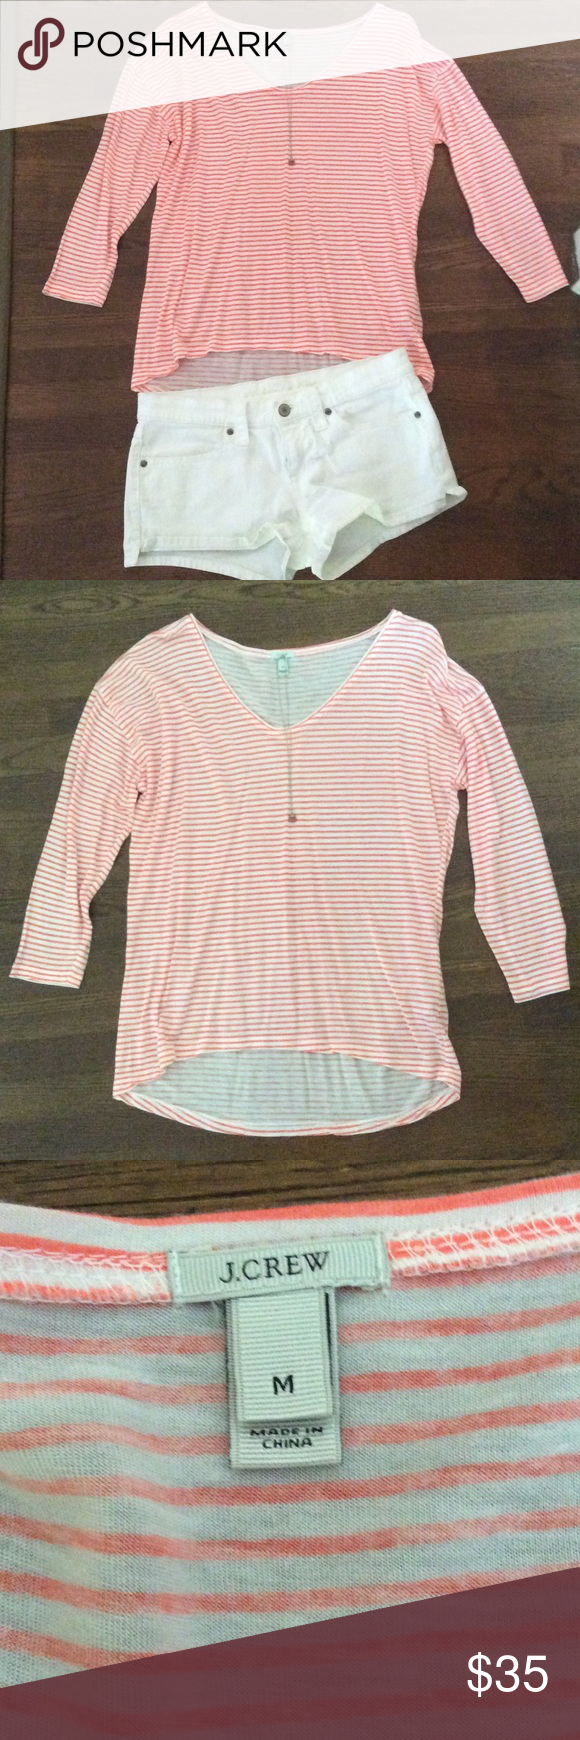 Slouchy 3/4 sleeved stripe t-shirt🌸 This is a super comfy tee by J. Crew. It's 3/4 length sleeves, has a fun bean orange stripe and is really cute worn fitted or oversized. I only wore it a handful of times, never put in the dryer. In perfect condition. Shorts displayed are for sale, see listing. Necklace not for sale. TTS. Doesn't require a tank to be worn underneath. It's just a matter of preference. J. Crew Tops Tees - Long Sleeve